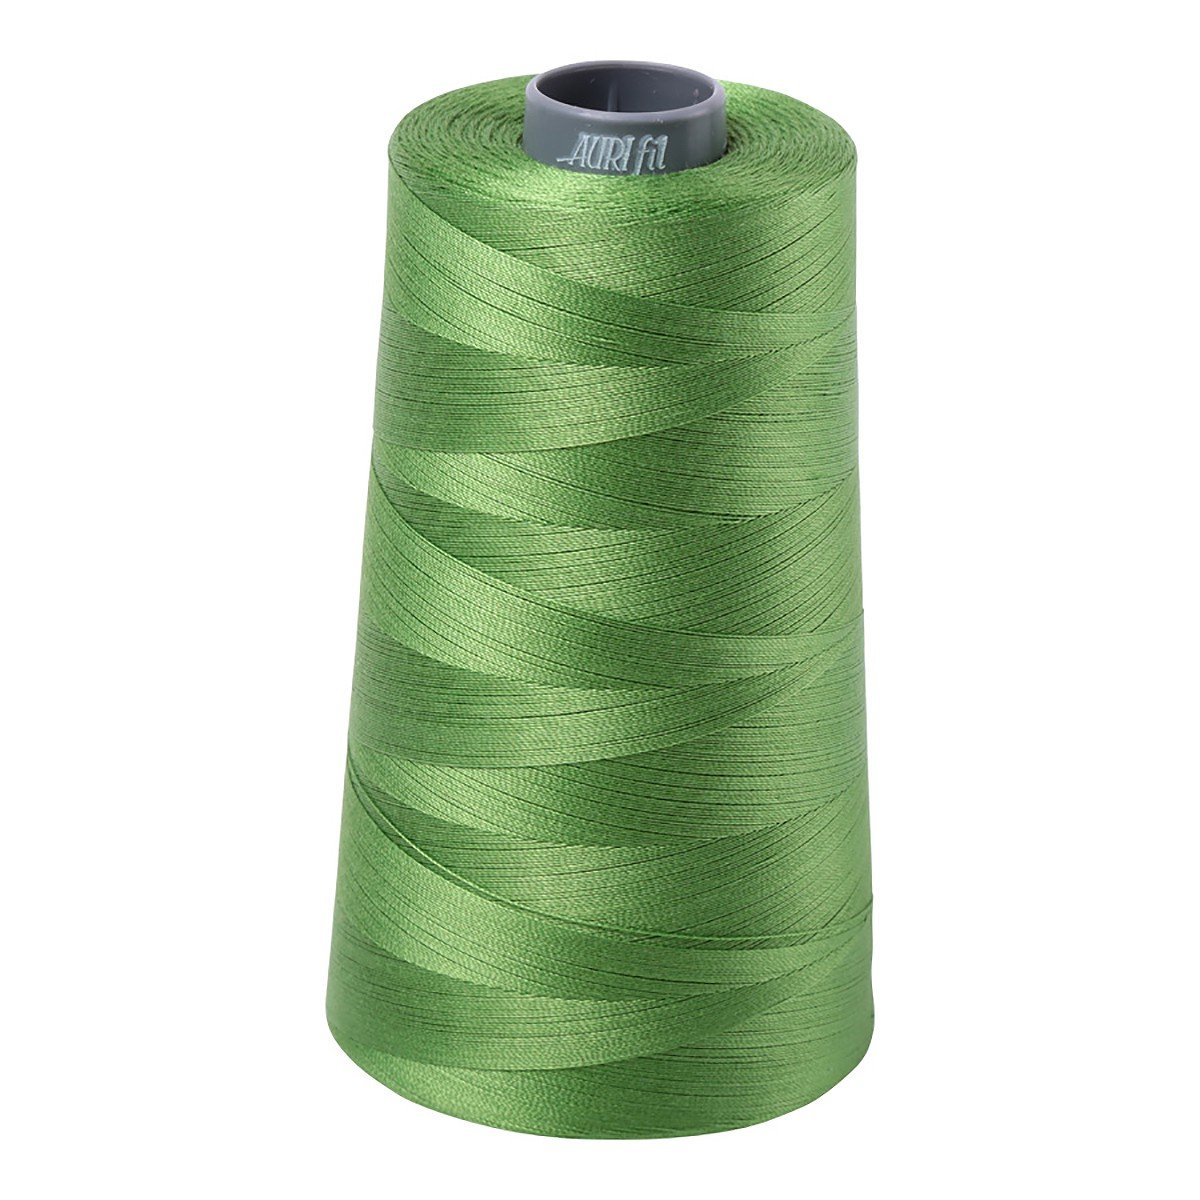 Mako (Cotton) Embroidery Thread 28wt 3609yds Grass Green